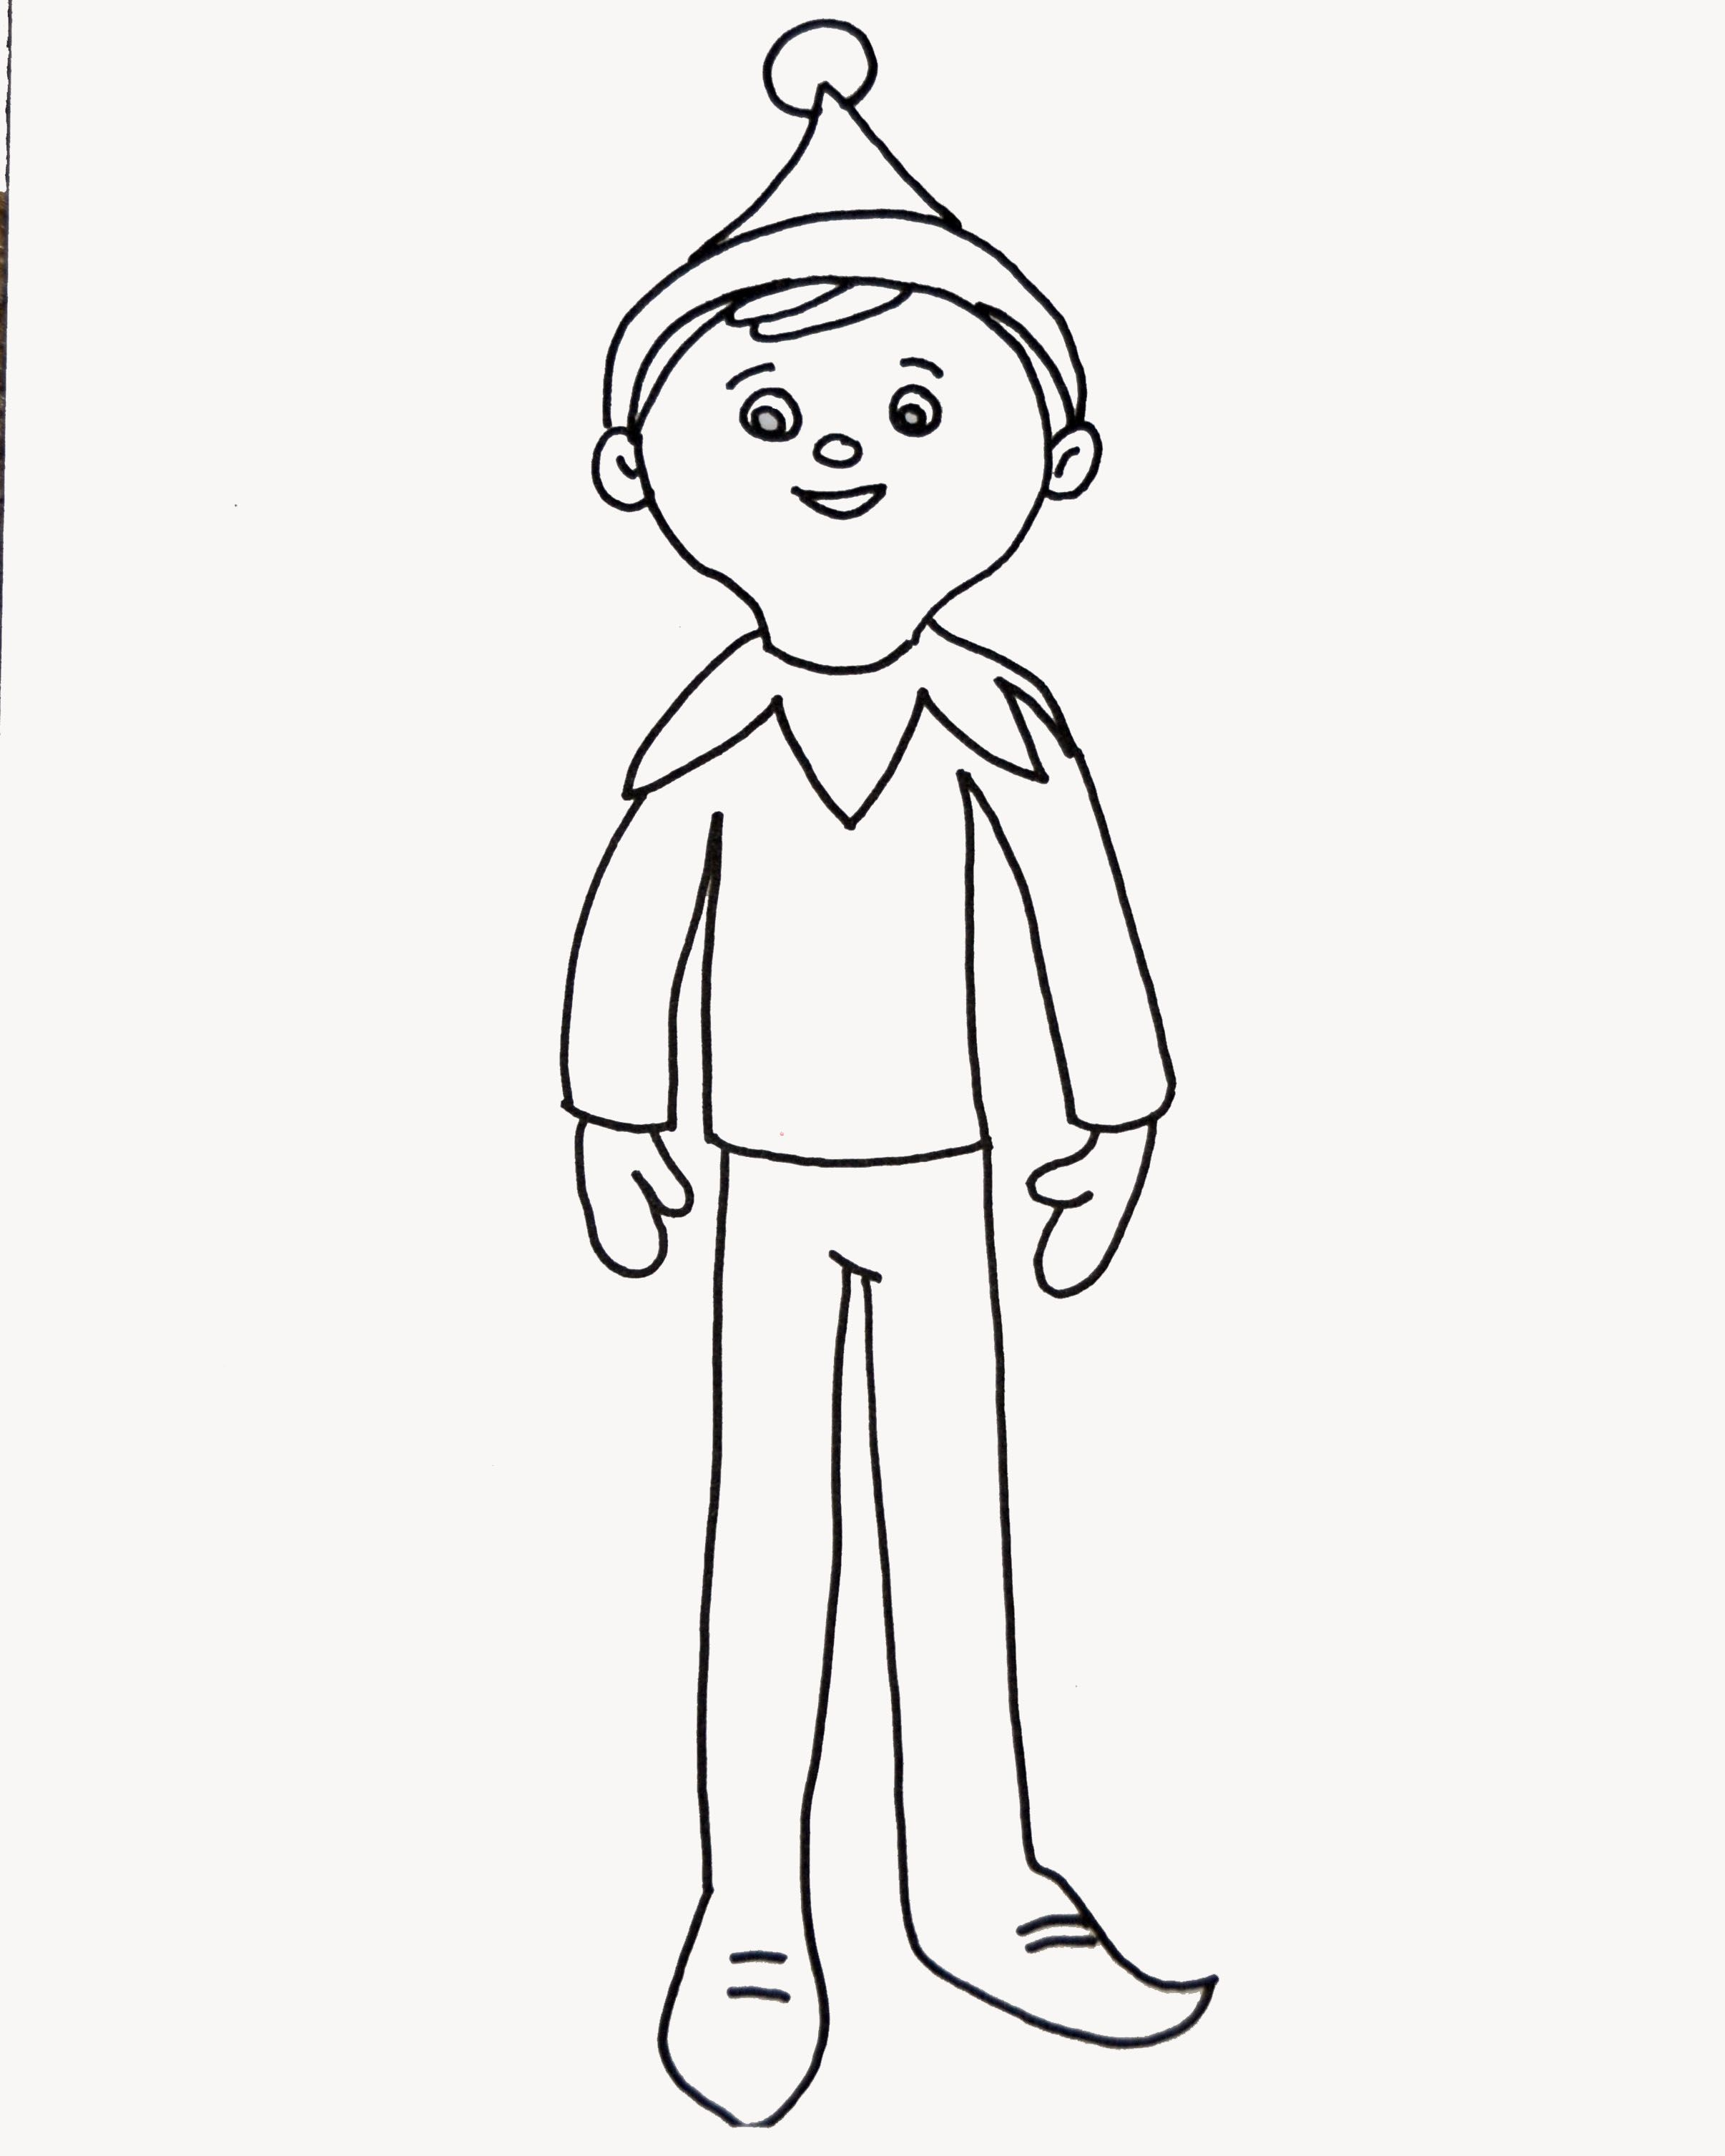 image regarding Elf on the Shelf Printable Coloring Pages identified as Elf upon the shelf coloring website page for elfie and the little ones toward